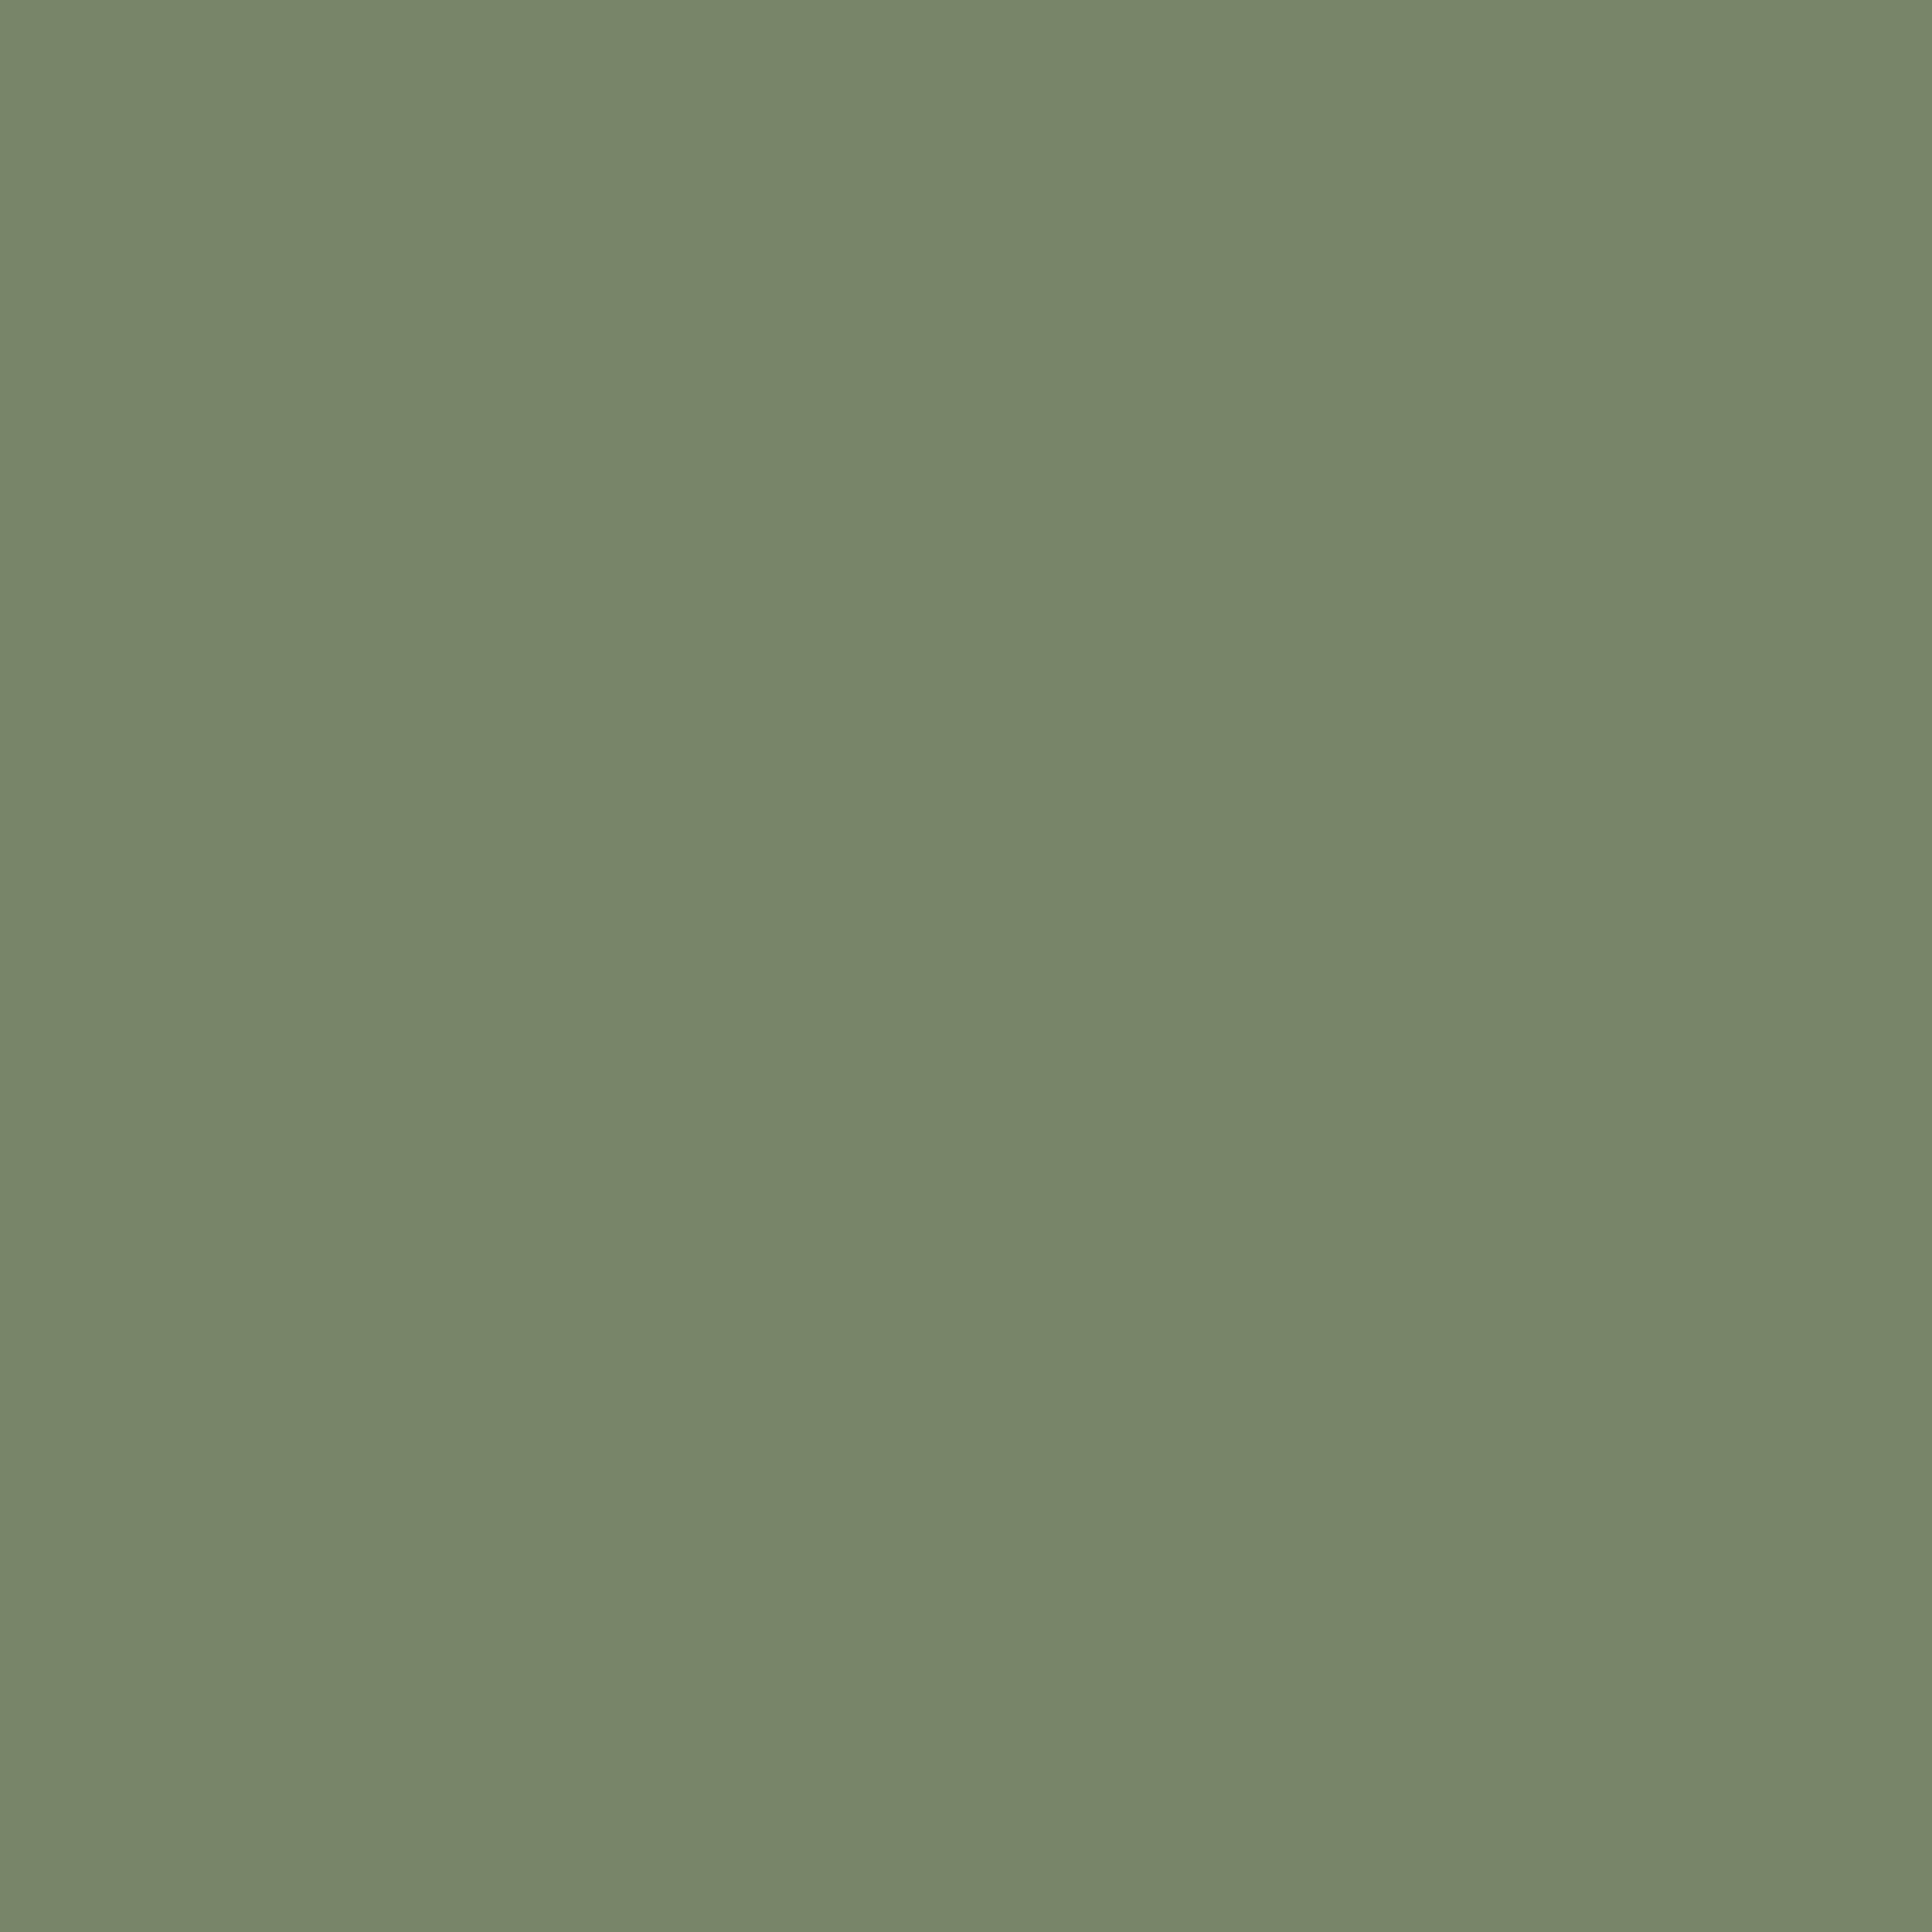 2048x2048 Camouflage Green Solid Color Background